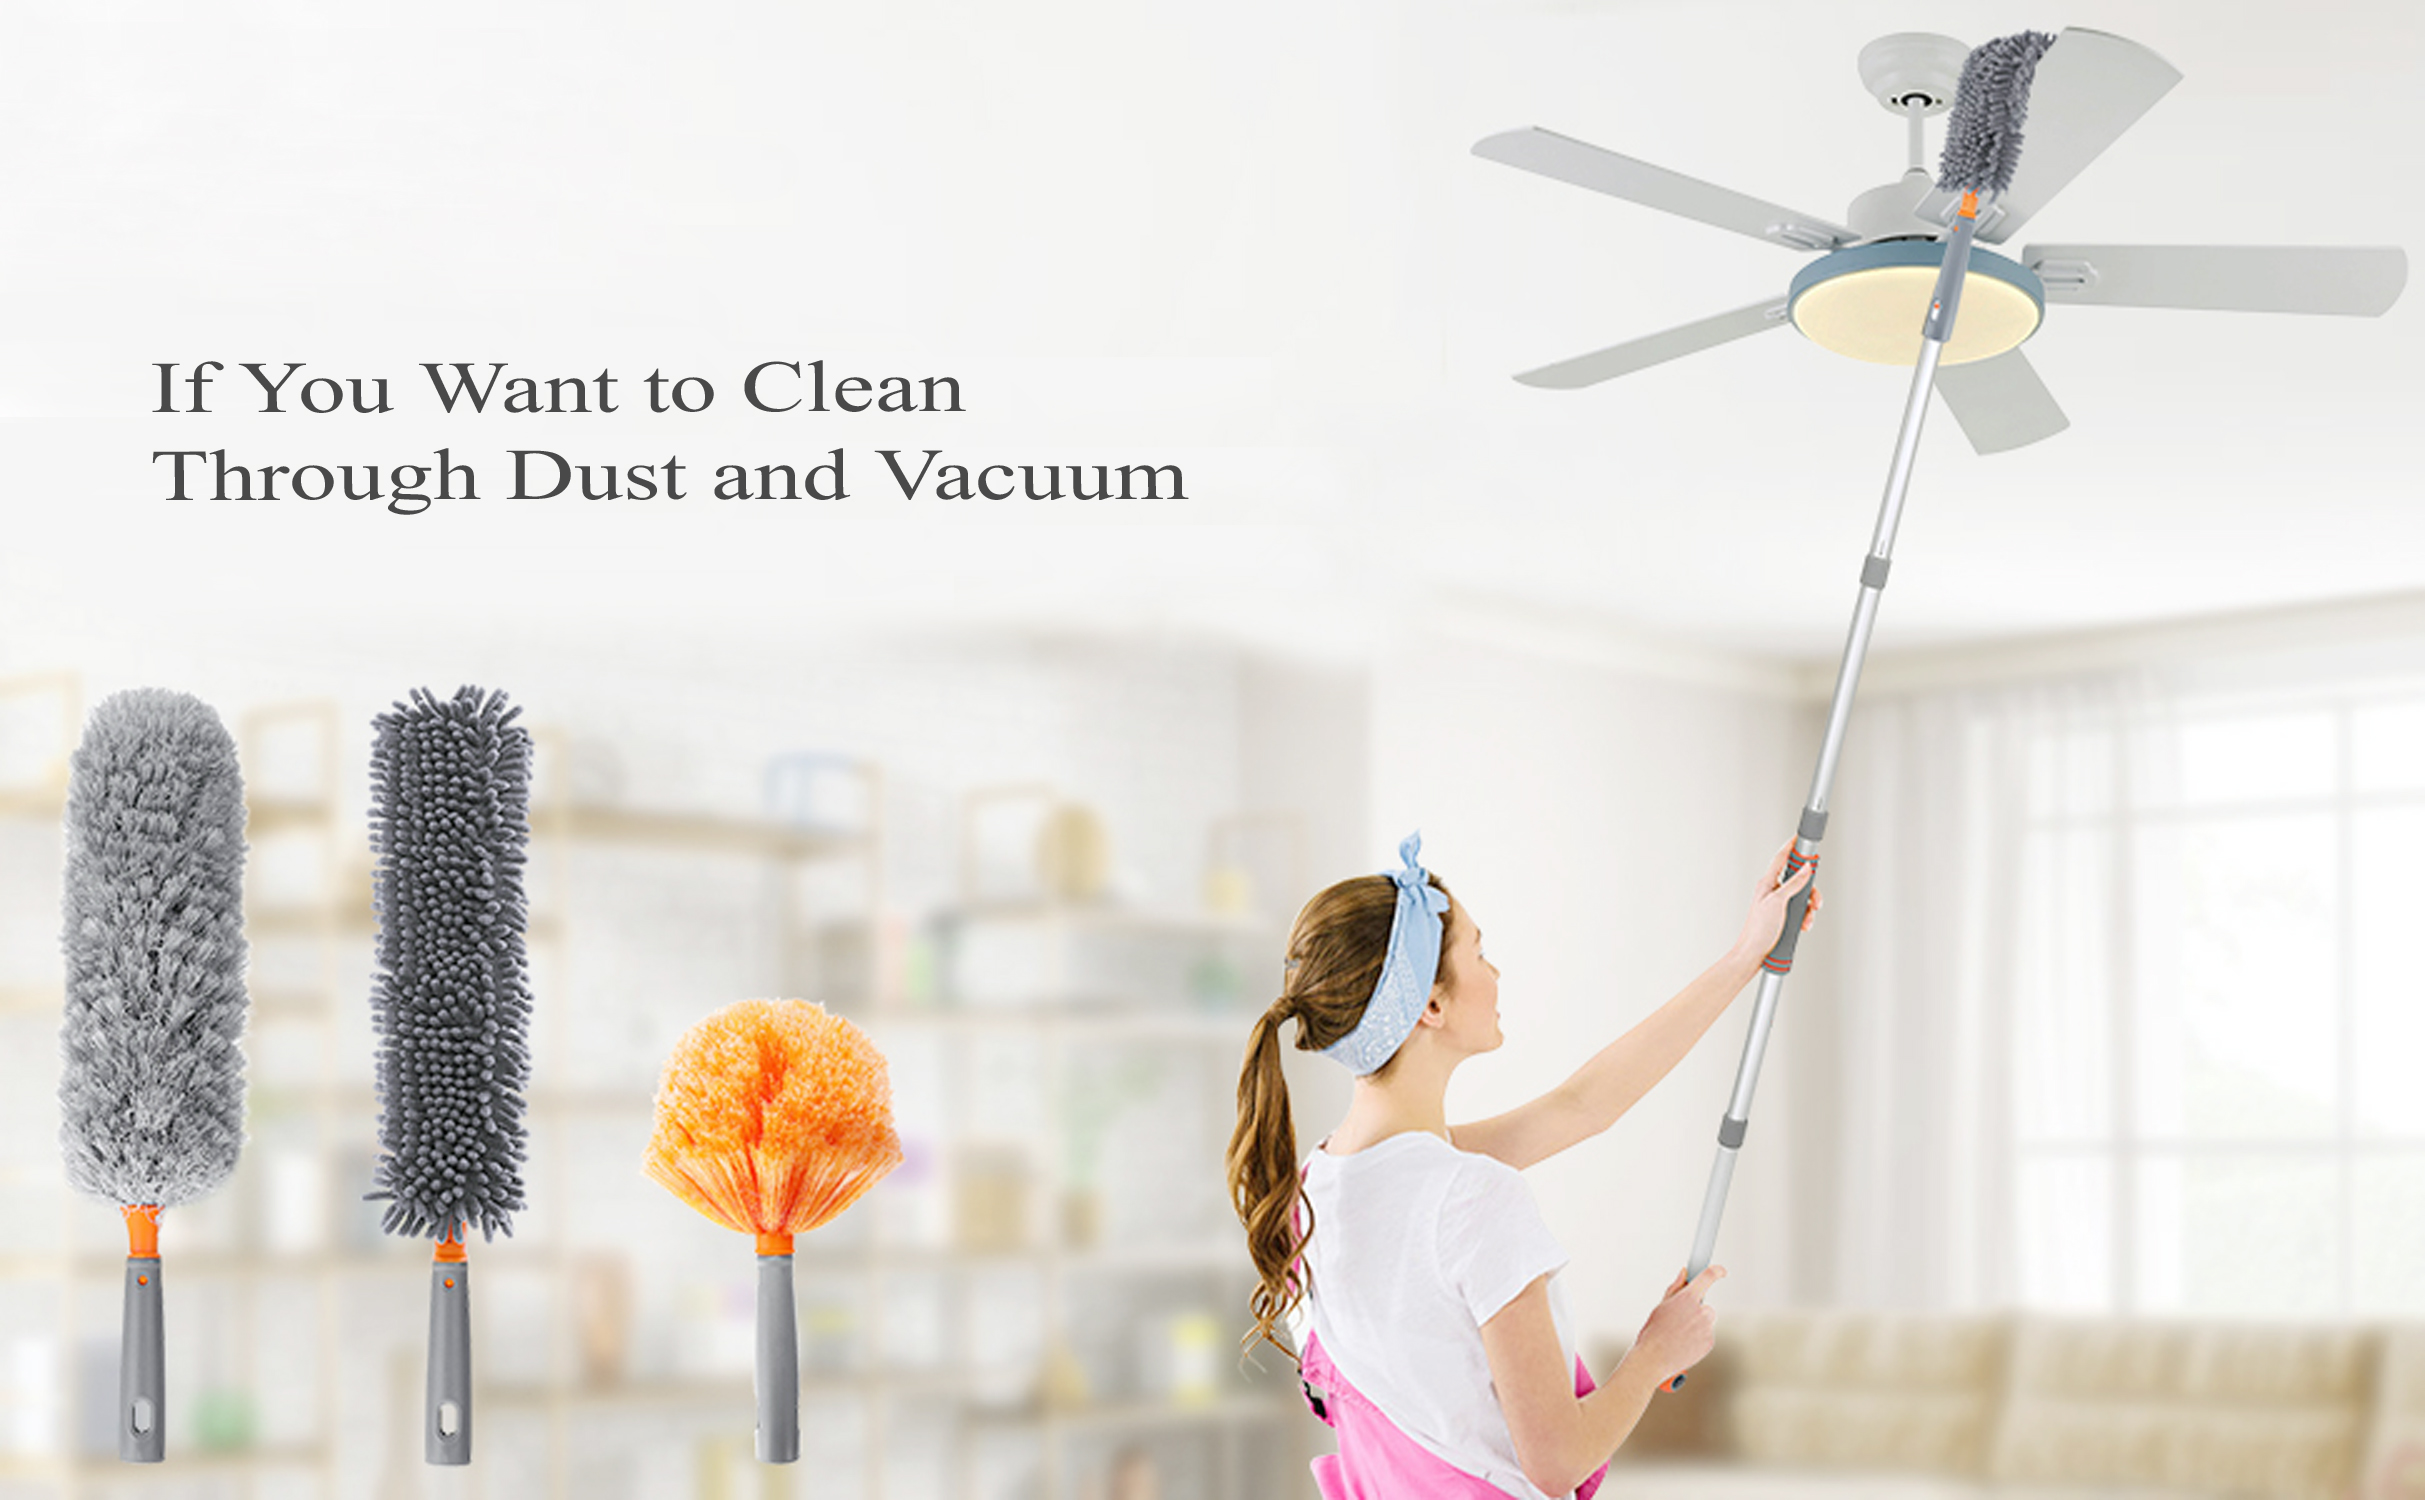 If You Want to Clean Through Dust and Vacuum